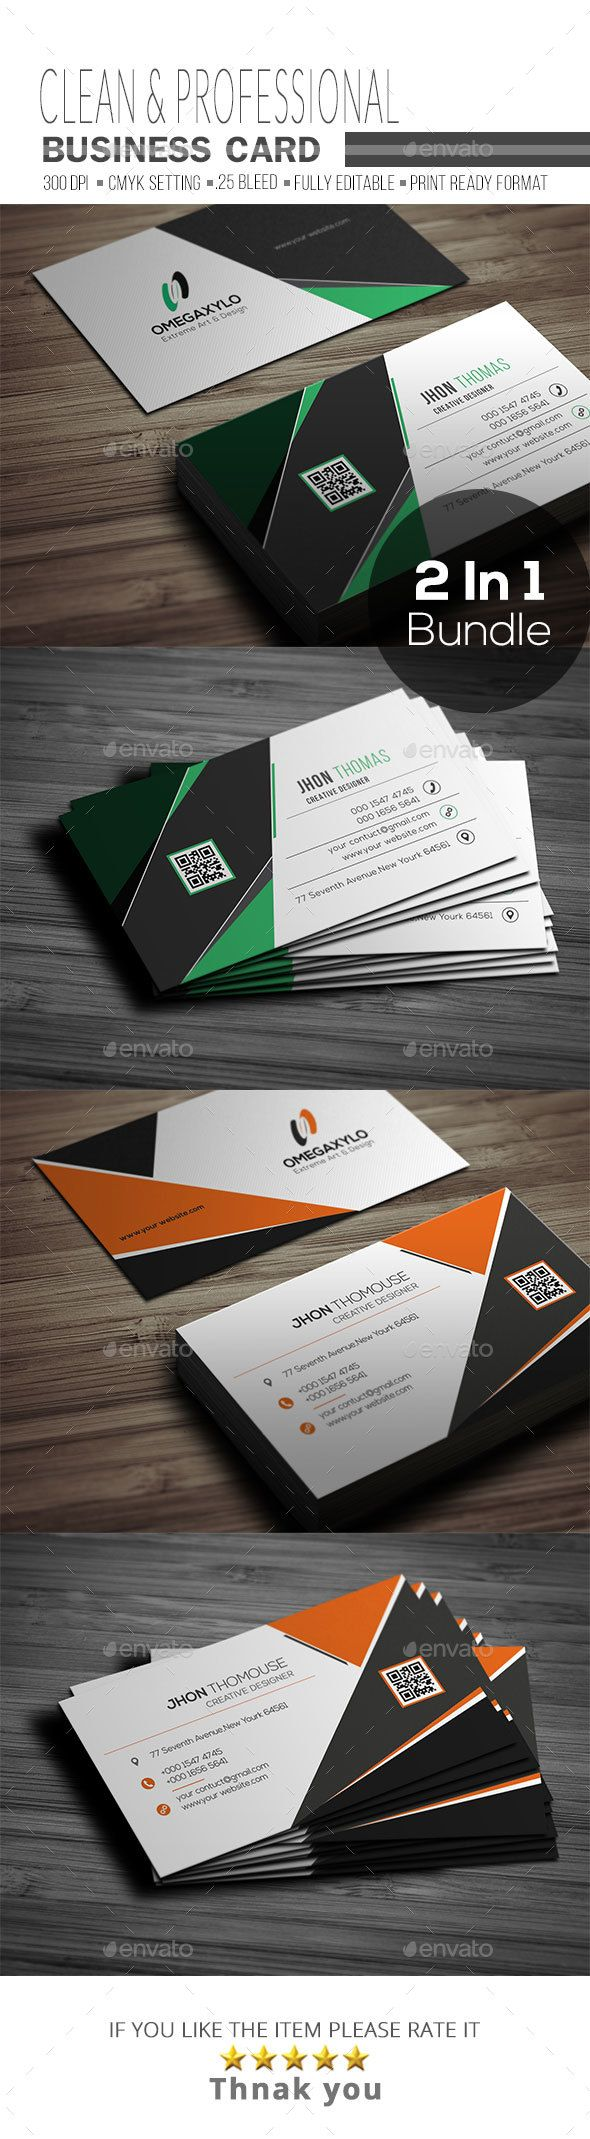 Blank glossy business cards images card design and card template blank glossy business cards image collections card design and card xerox glossy business cards image collections reheart Images